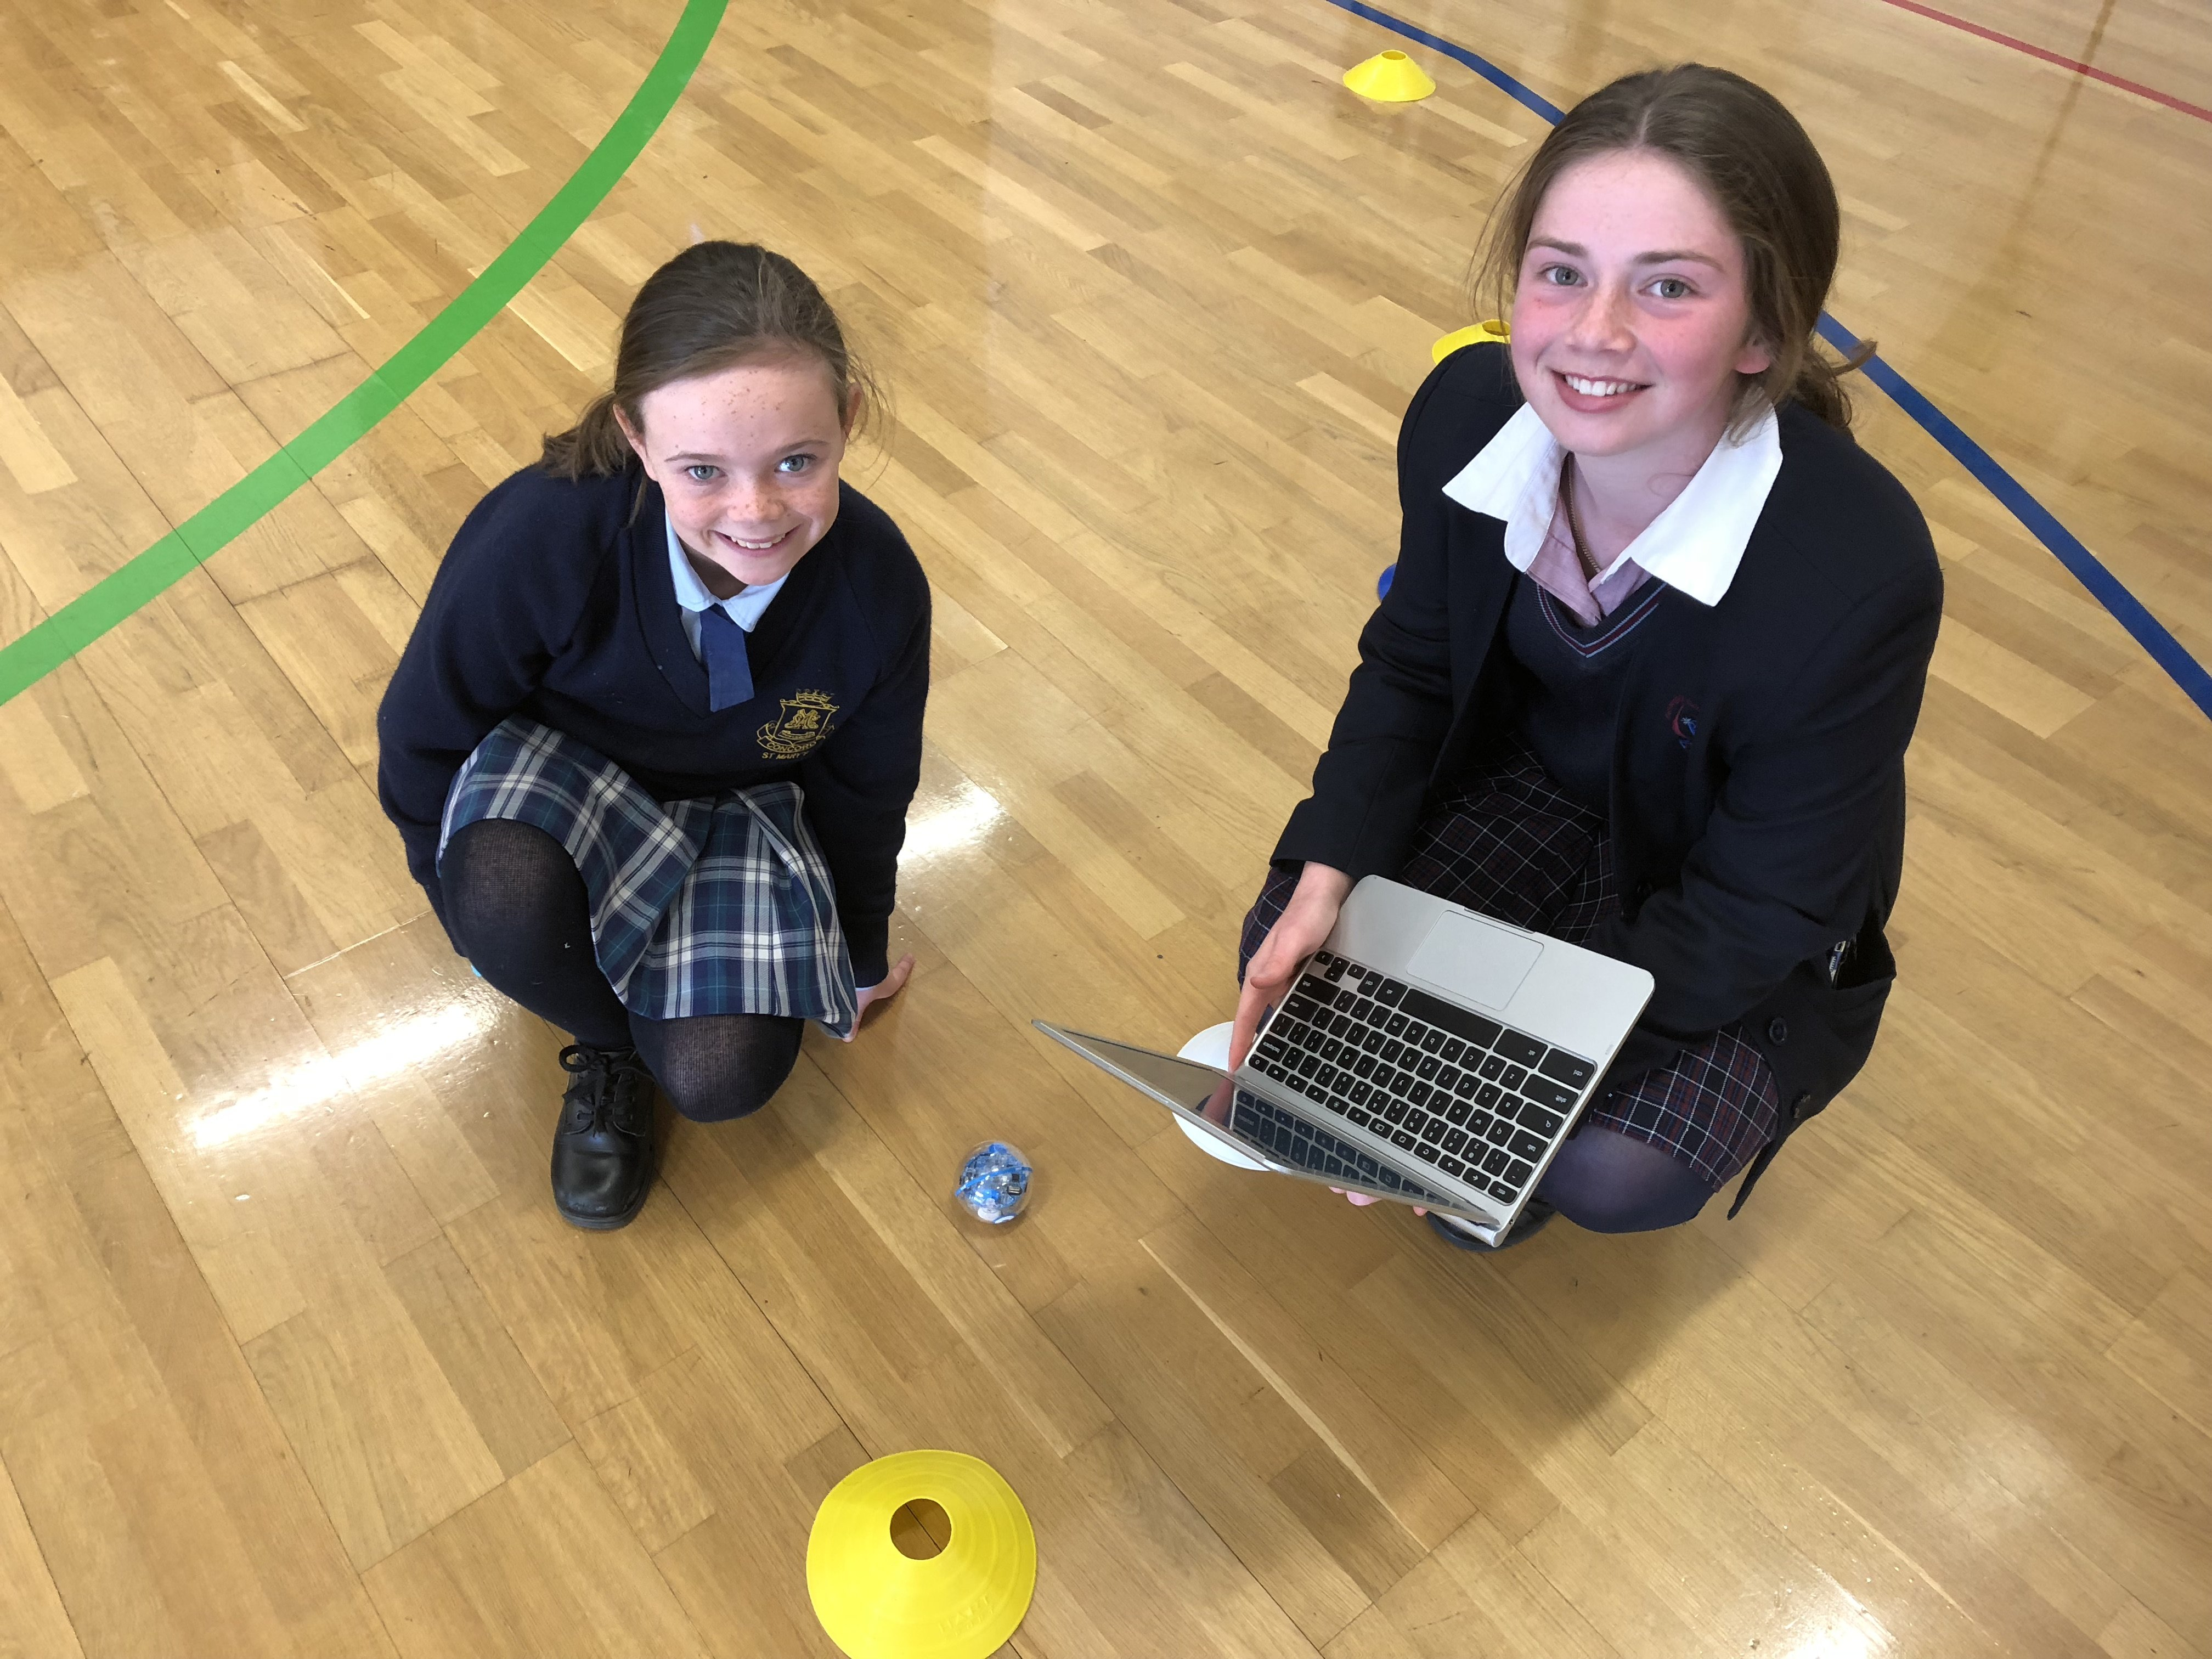 Domremy students and teachers hosted a fun and instructive STEM Robotics day for primary feeder school students on 20 August.